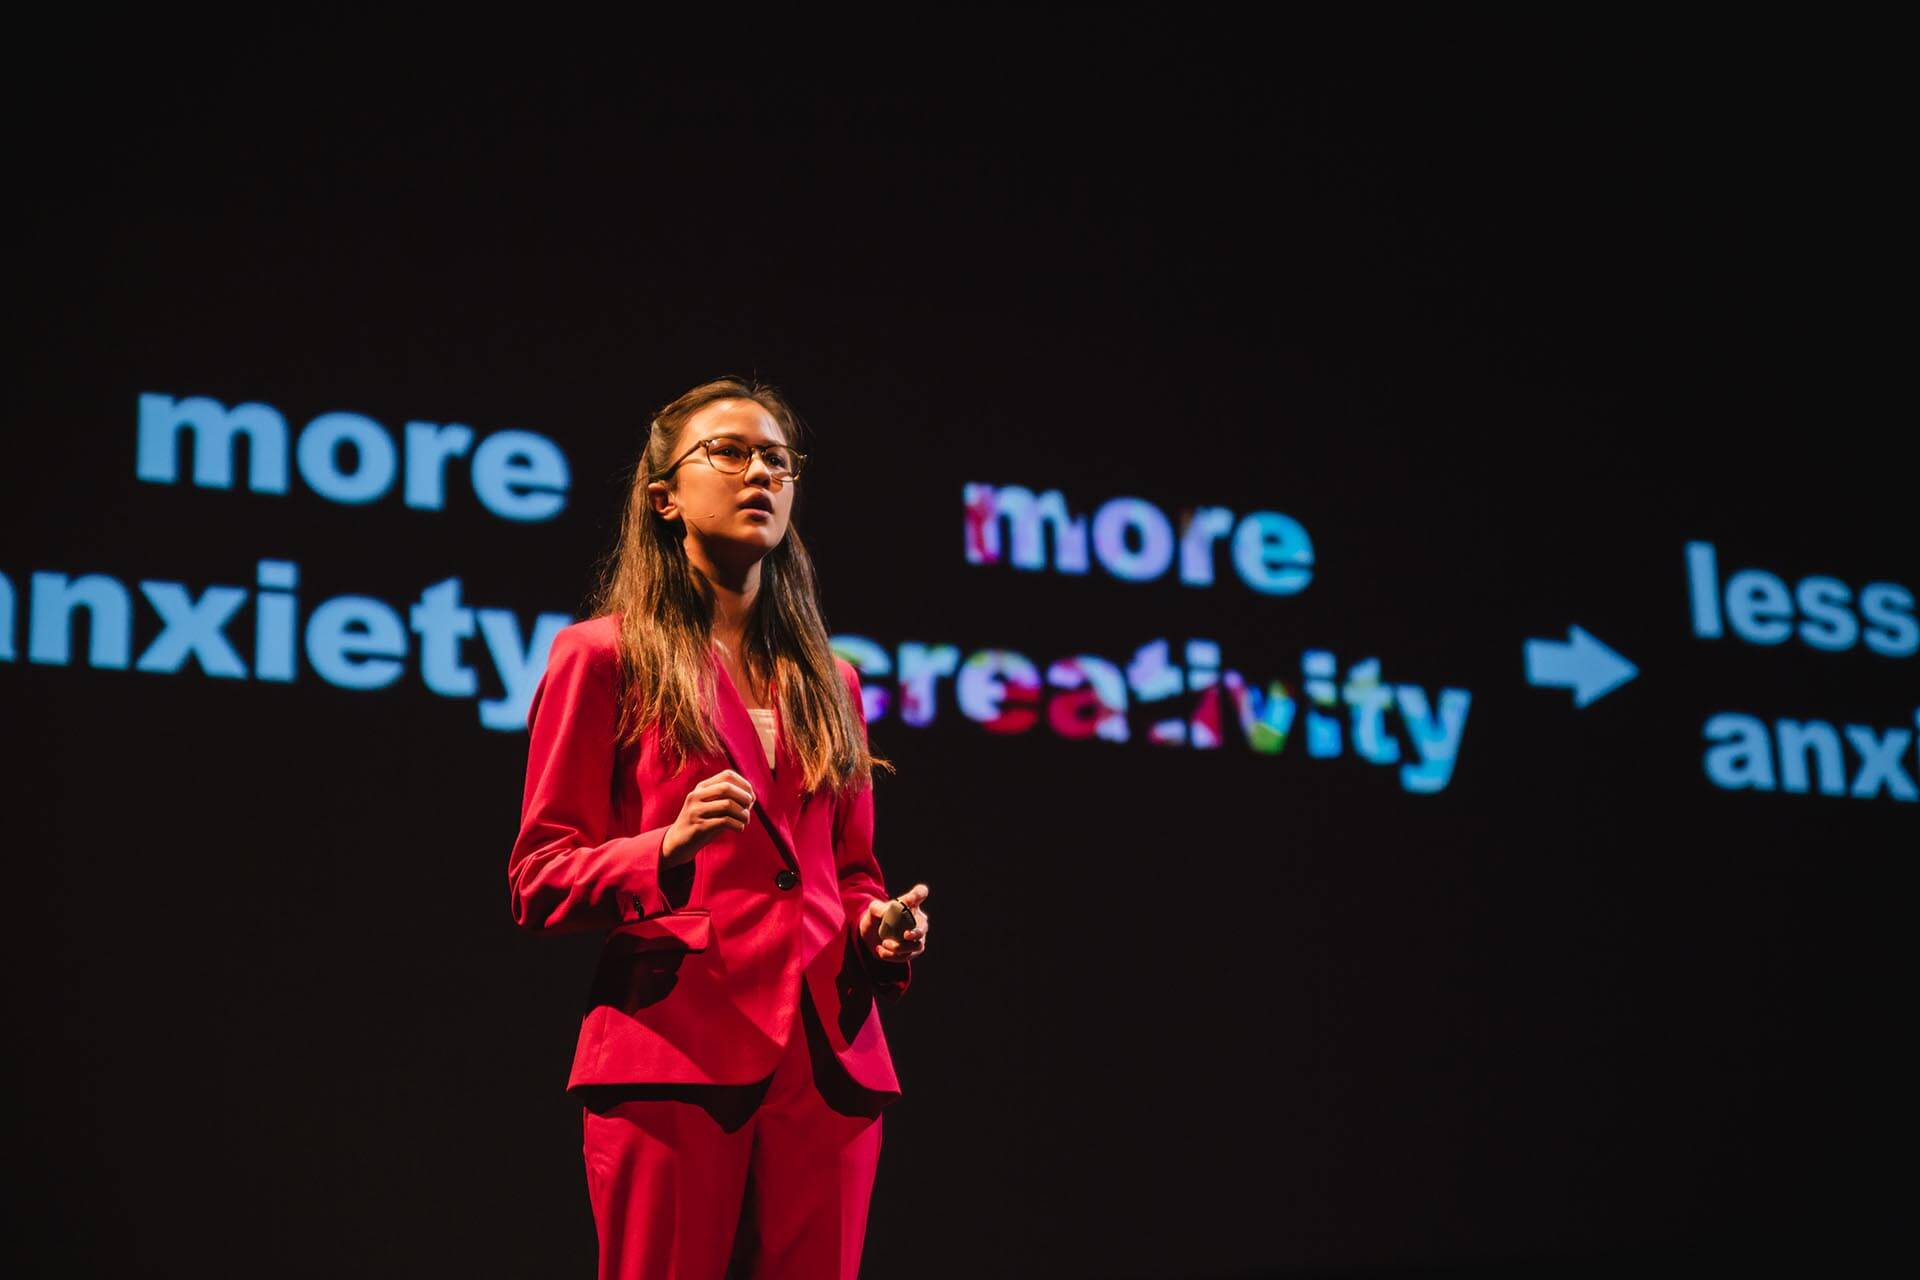 A High School Student in a Red Suit Gives Her TEDx Youth Presentation